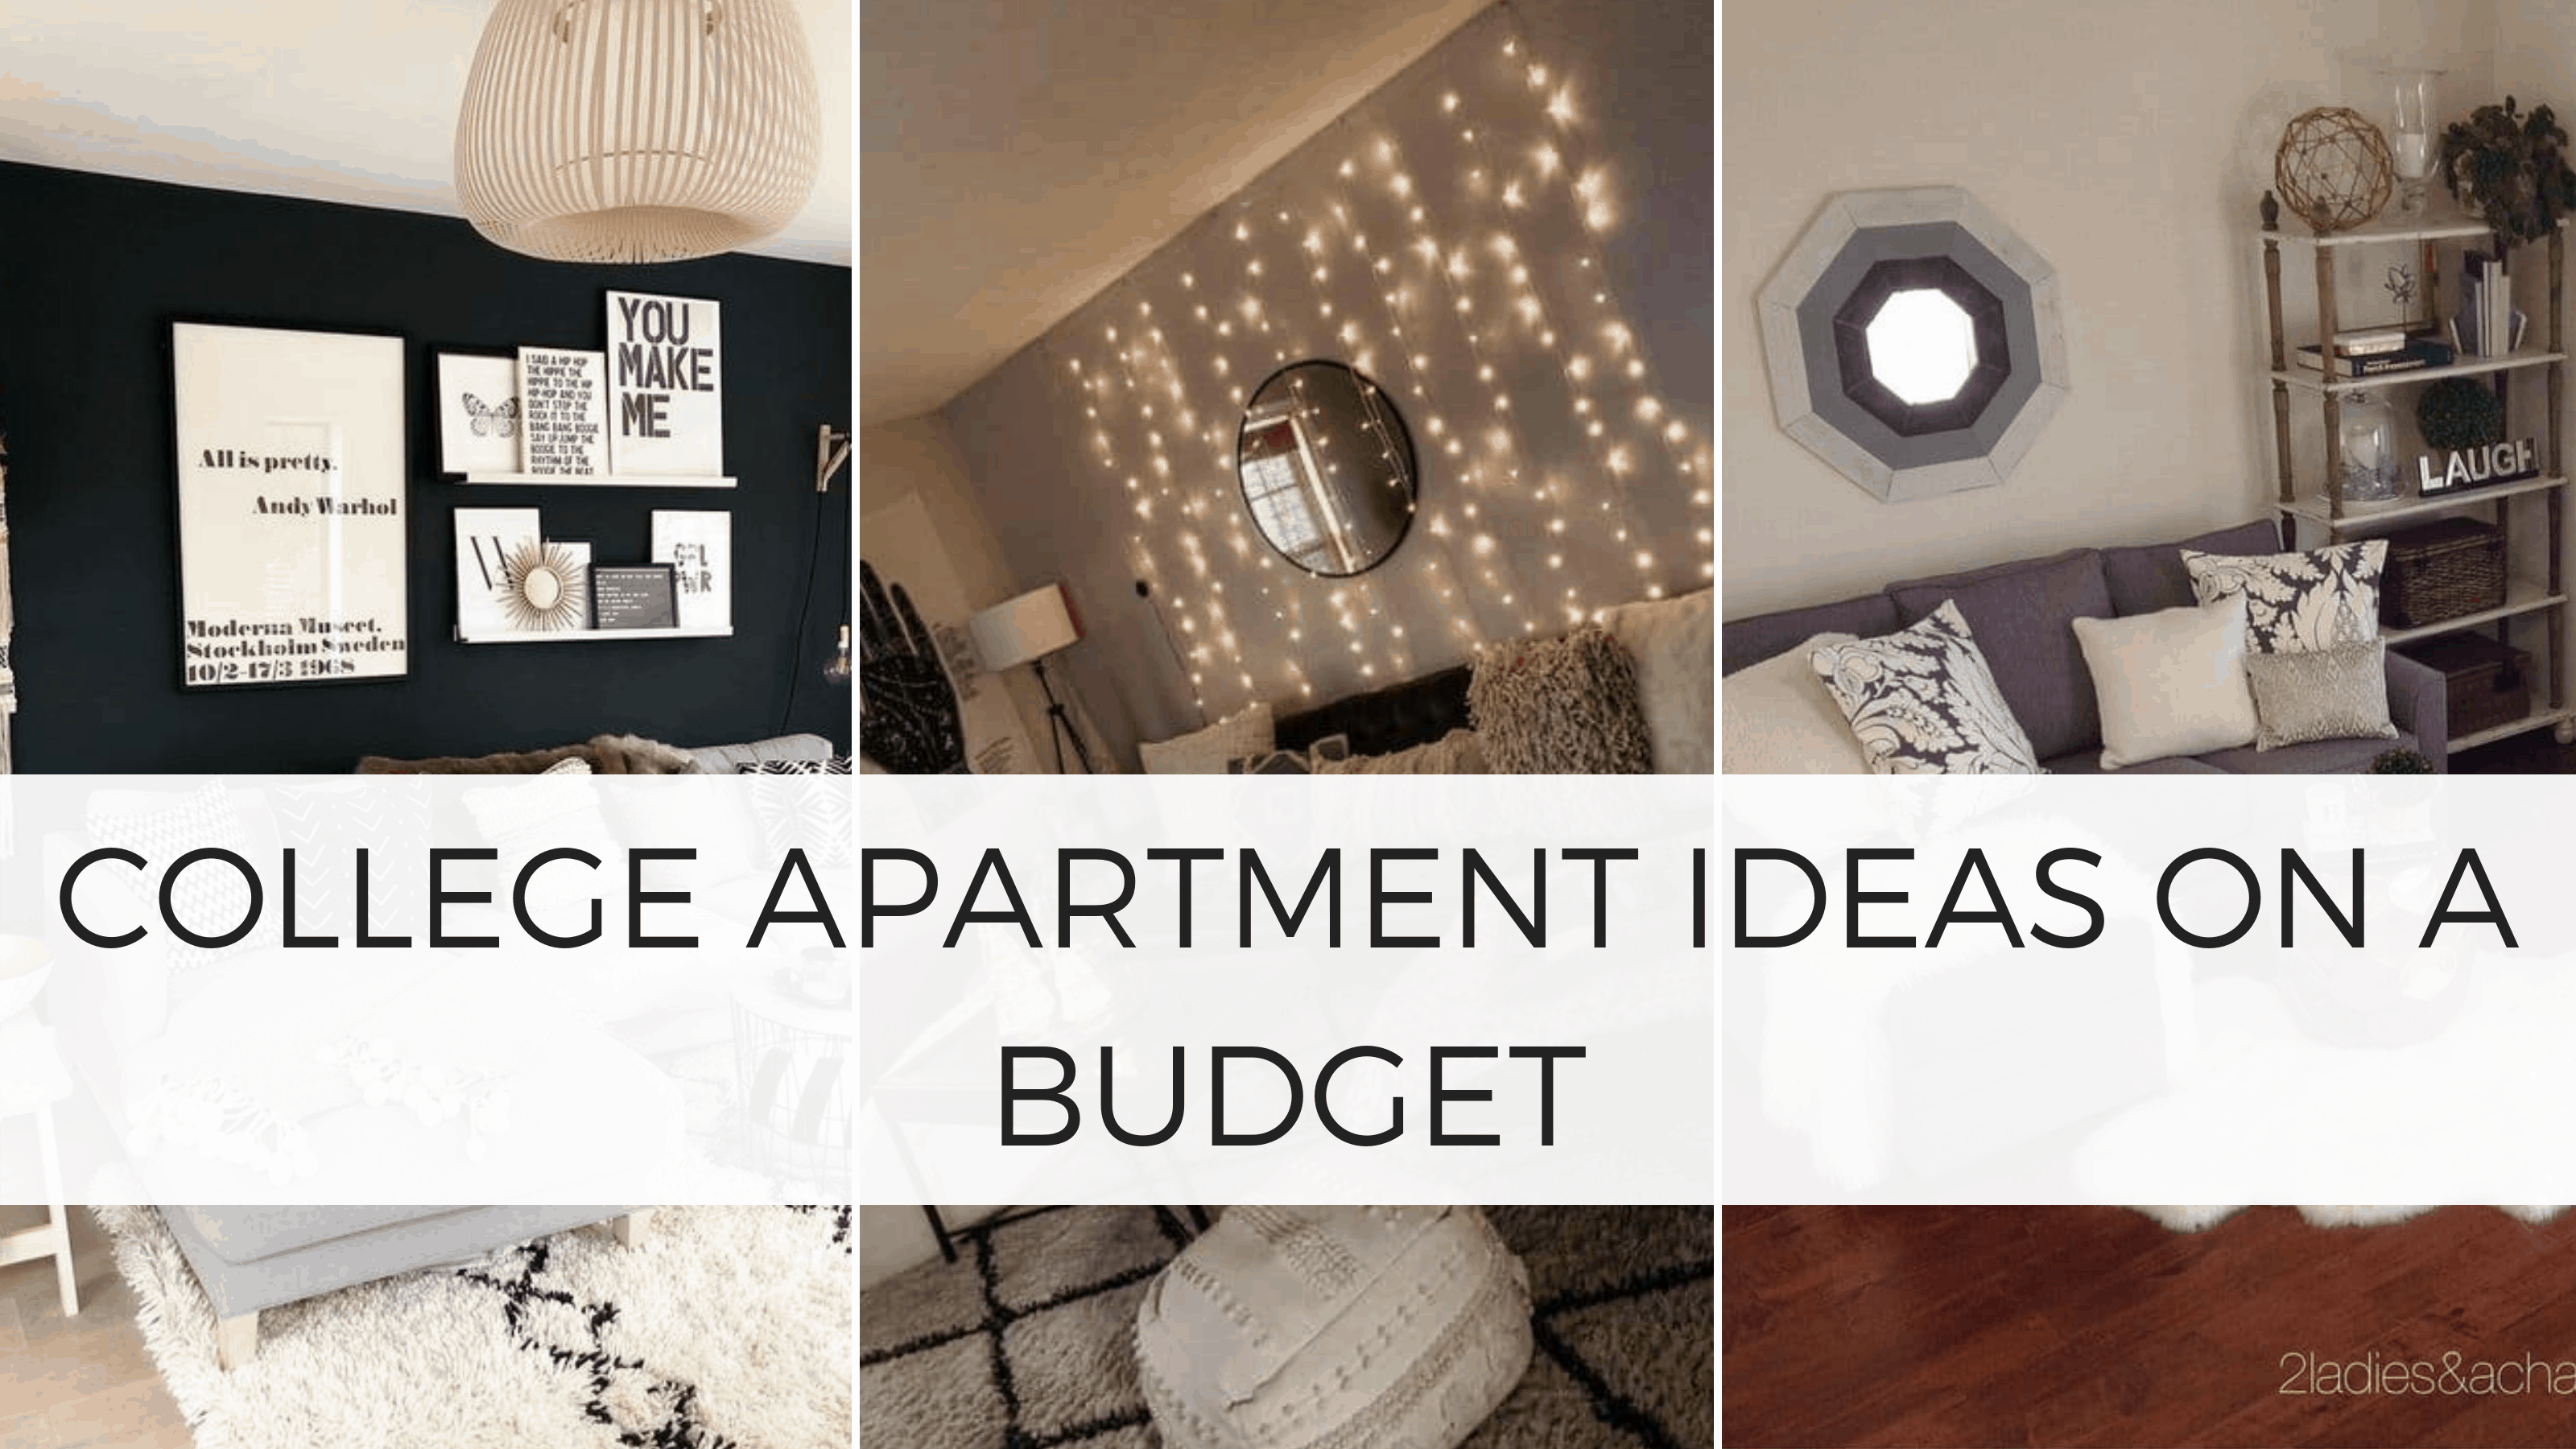 Apartment Decorating Ideas On A Budget.24 Genius College Apartment Decorating Ideas On A Budget